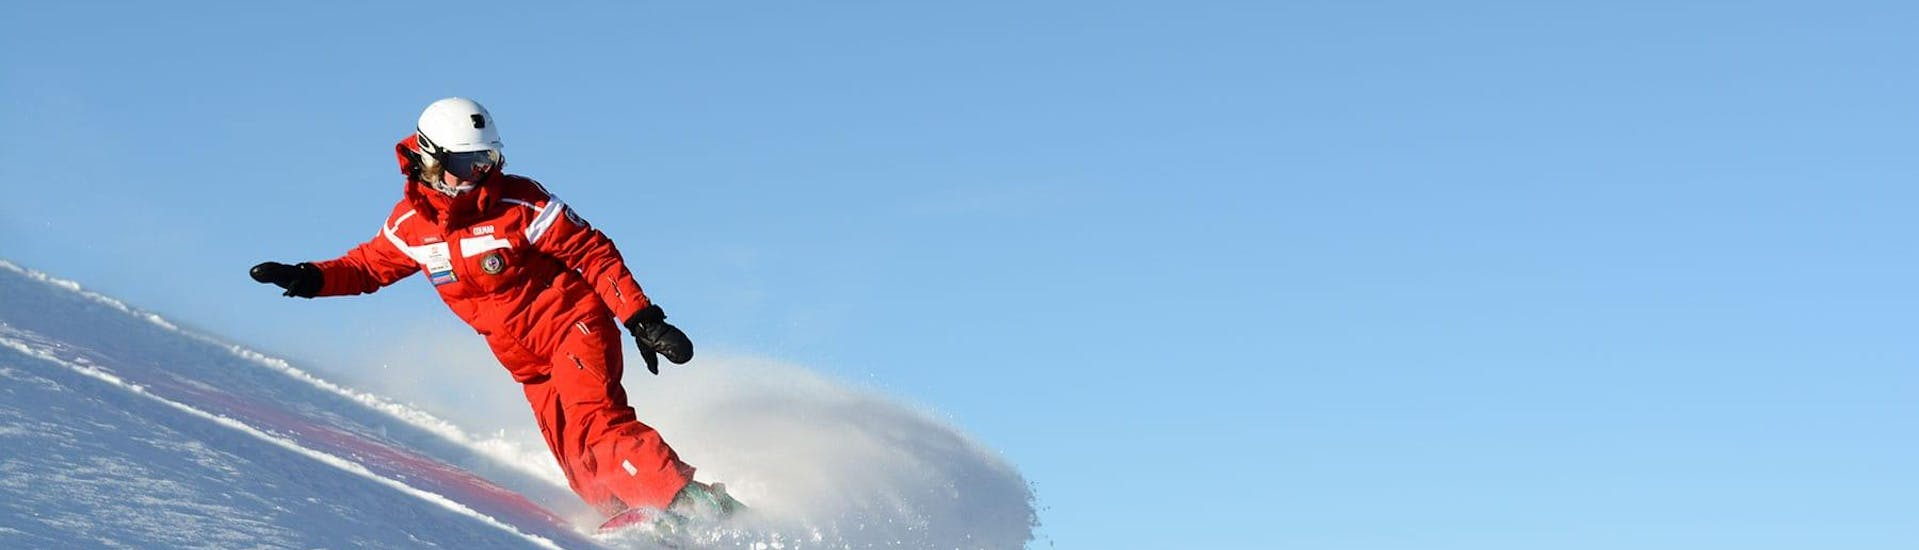 Snowboarding Lessons for Kids & Adults of All Levels with Ski and Snowboard School Selva Val Gardena - Hero image